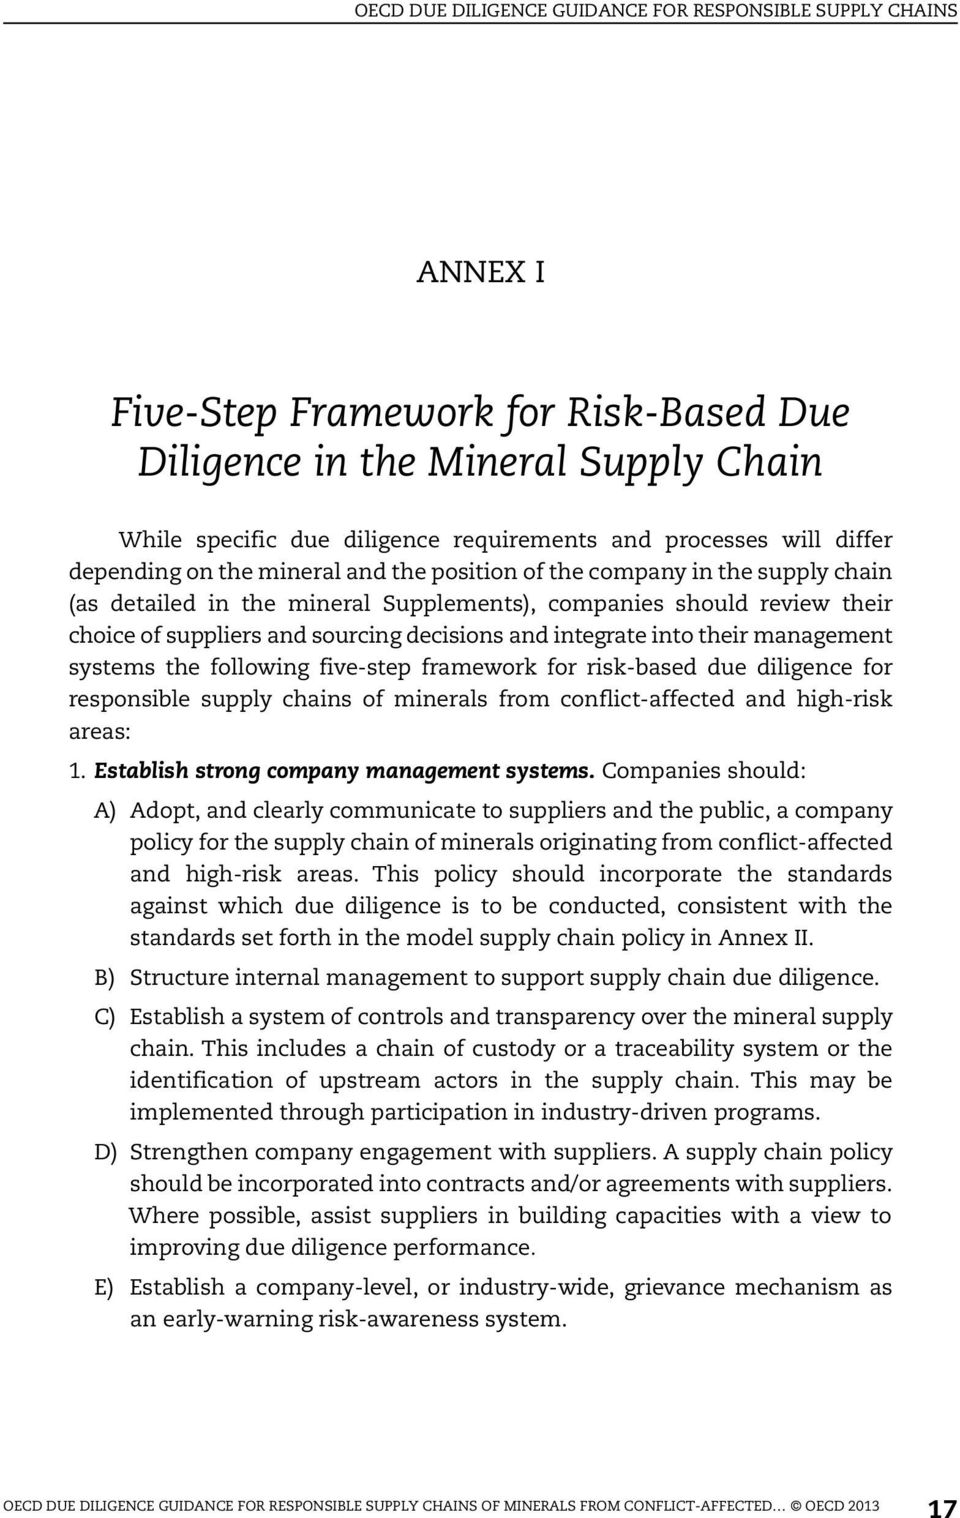 decisions and integrate into their management systems the following five-step framework for risk-based due diligence for responsible supply chains of minerals from conflict-affected and high-risk